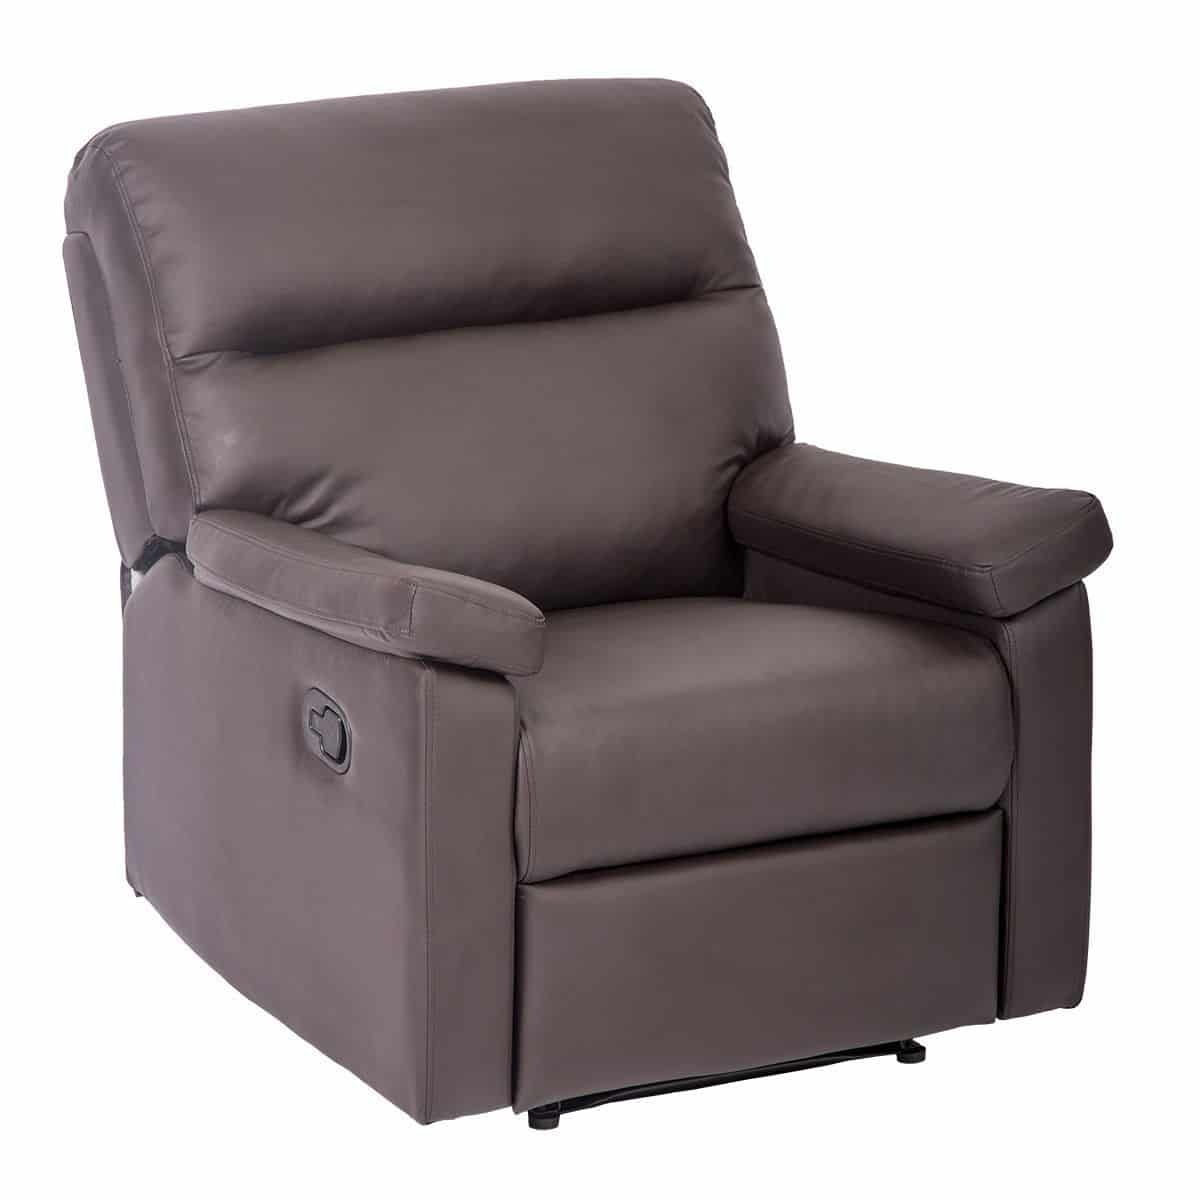 Awesome Finding The Best Small Recliners We Feature 11 Spiritservingveterans Wood Chair Design Ideas Spiritservingveteransorg